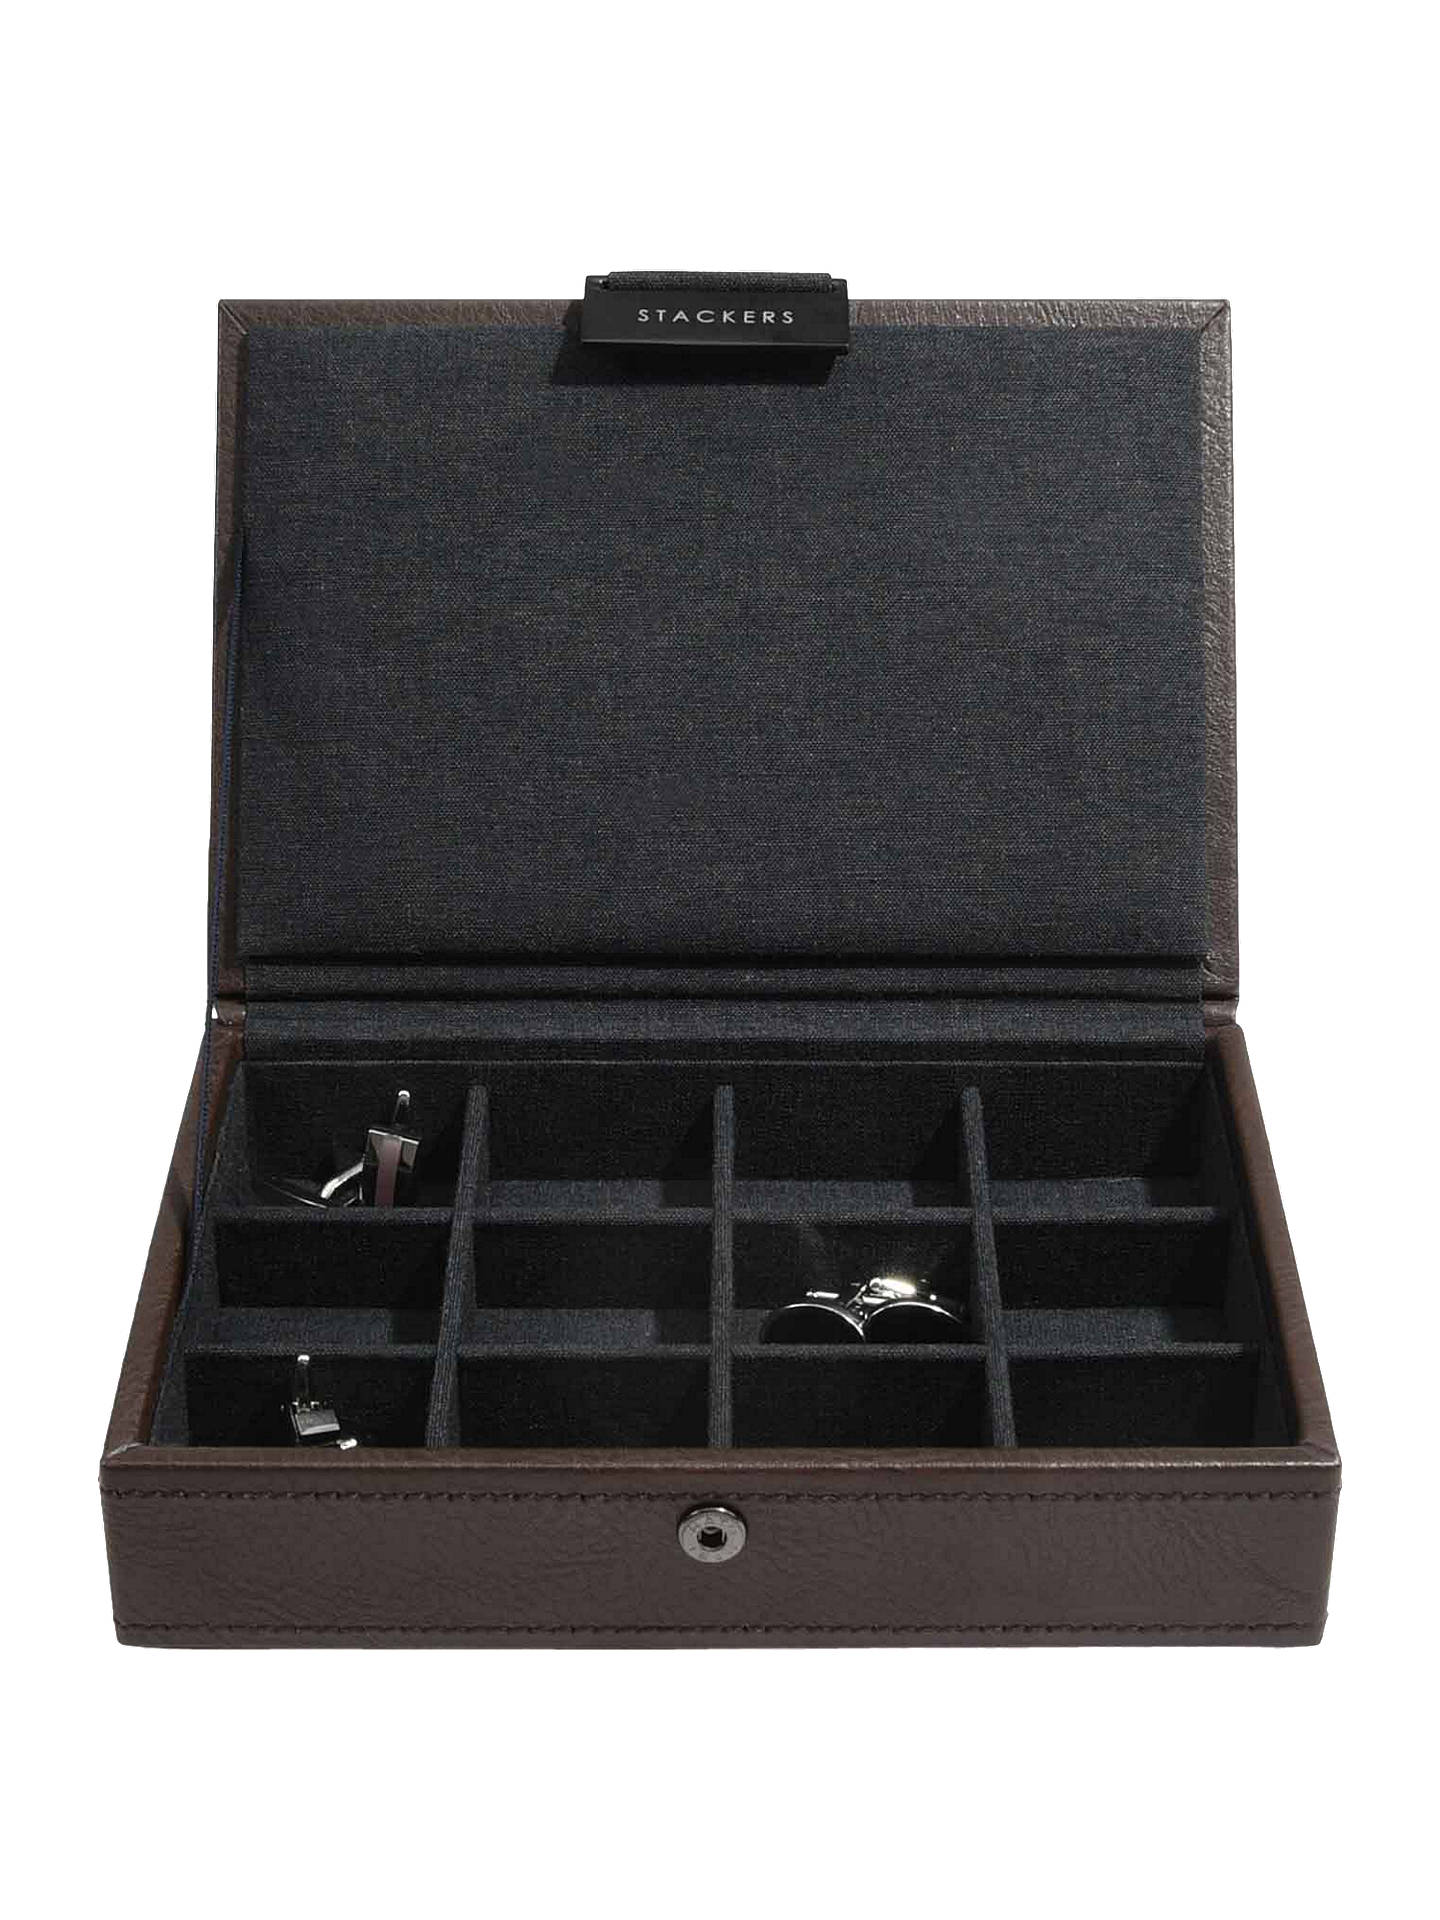 Buy Stackers Lidded Cufflink Box, Brown Online at johnlewis.com